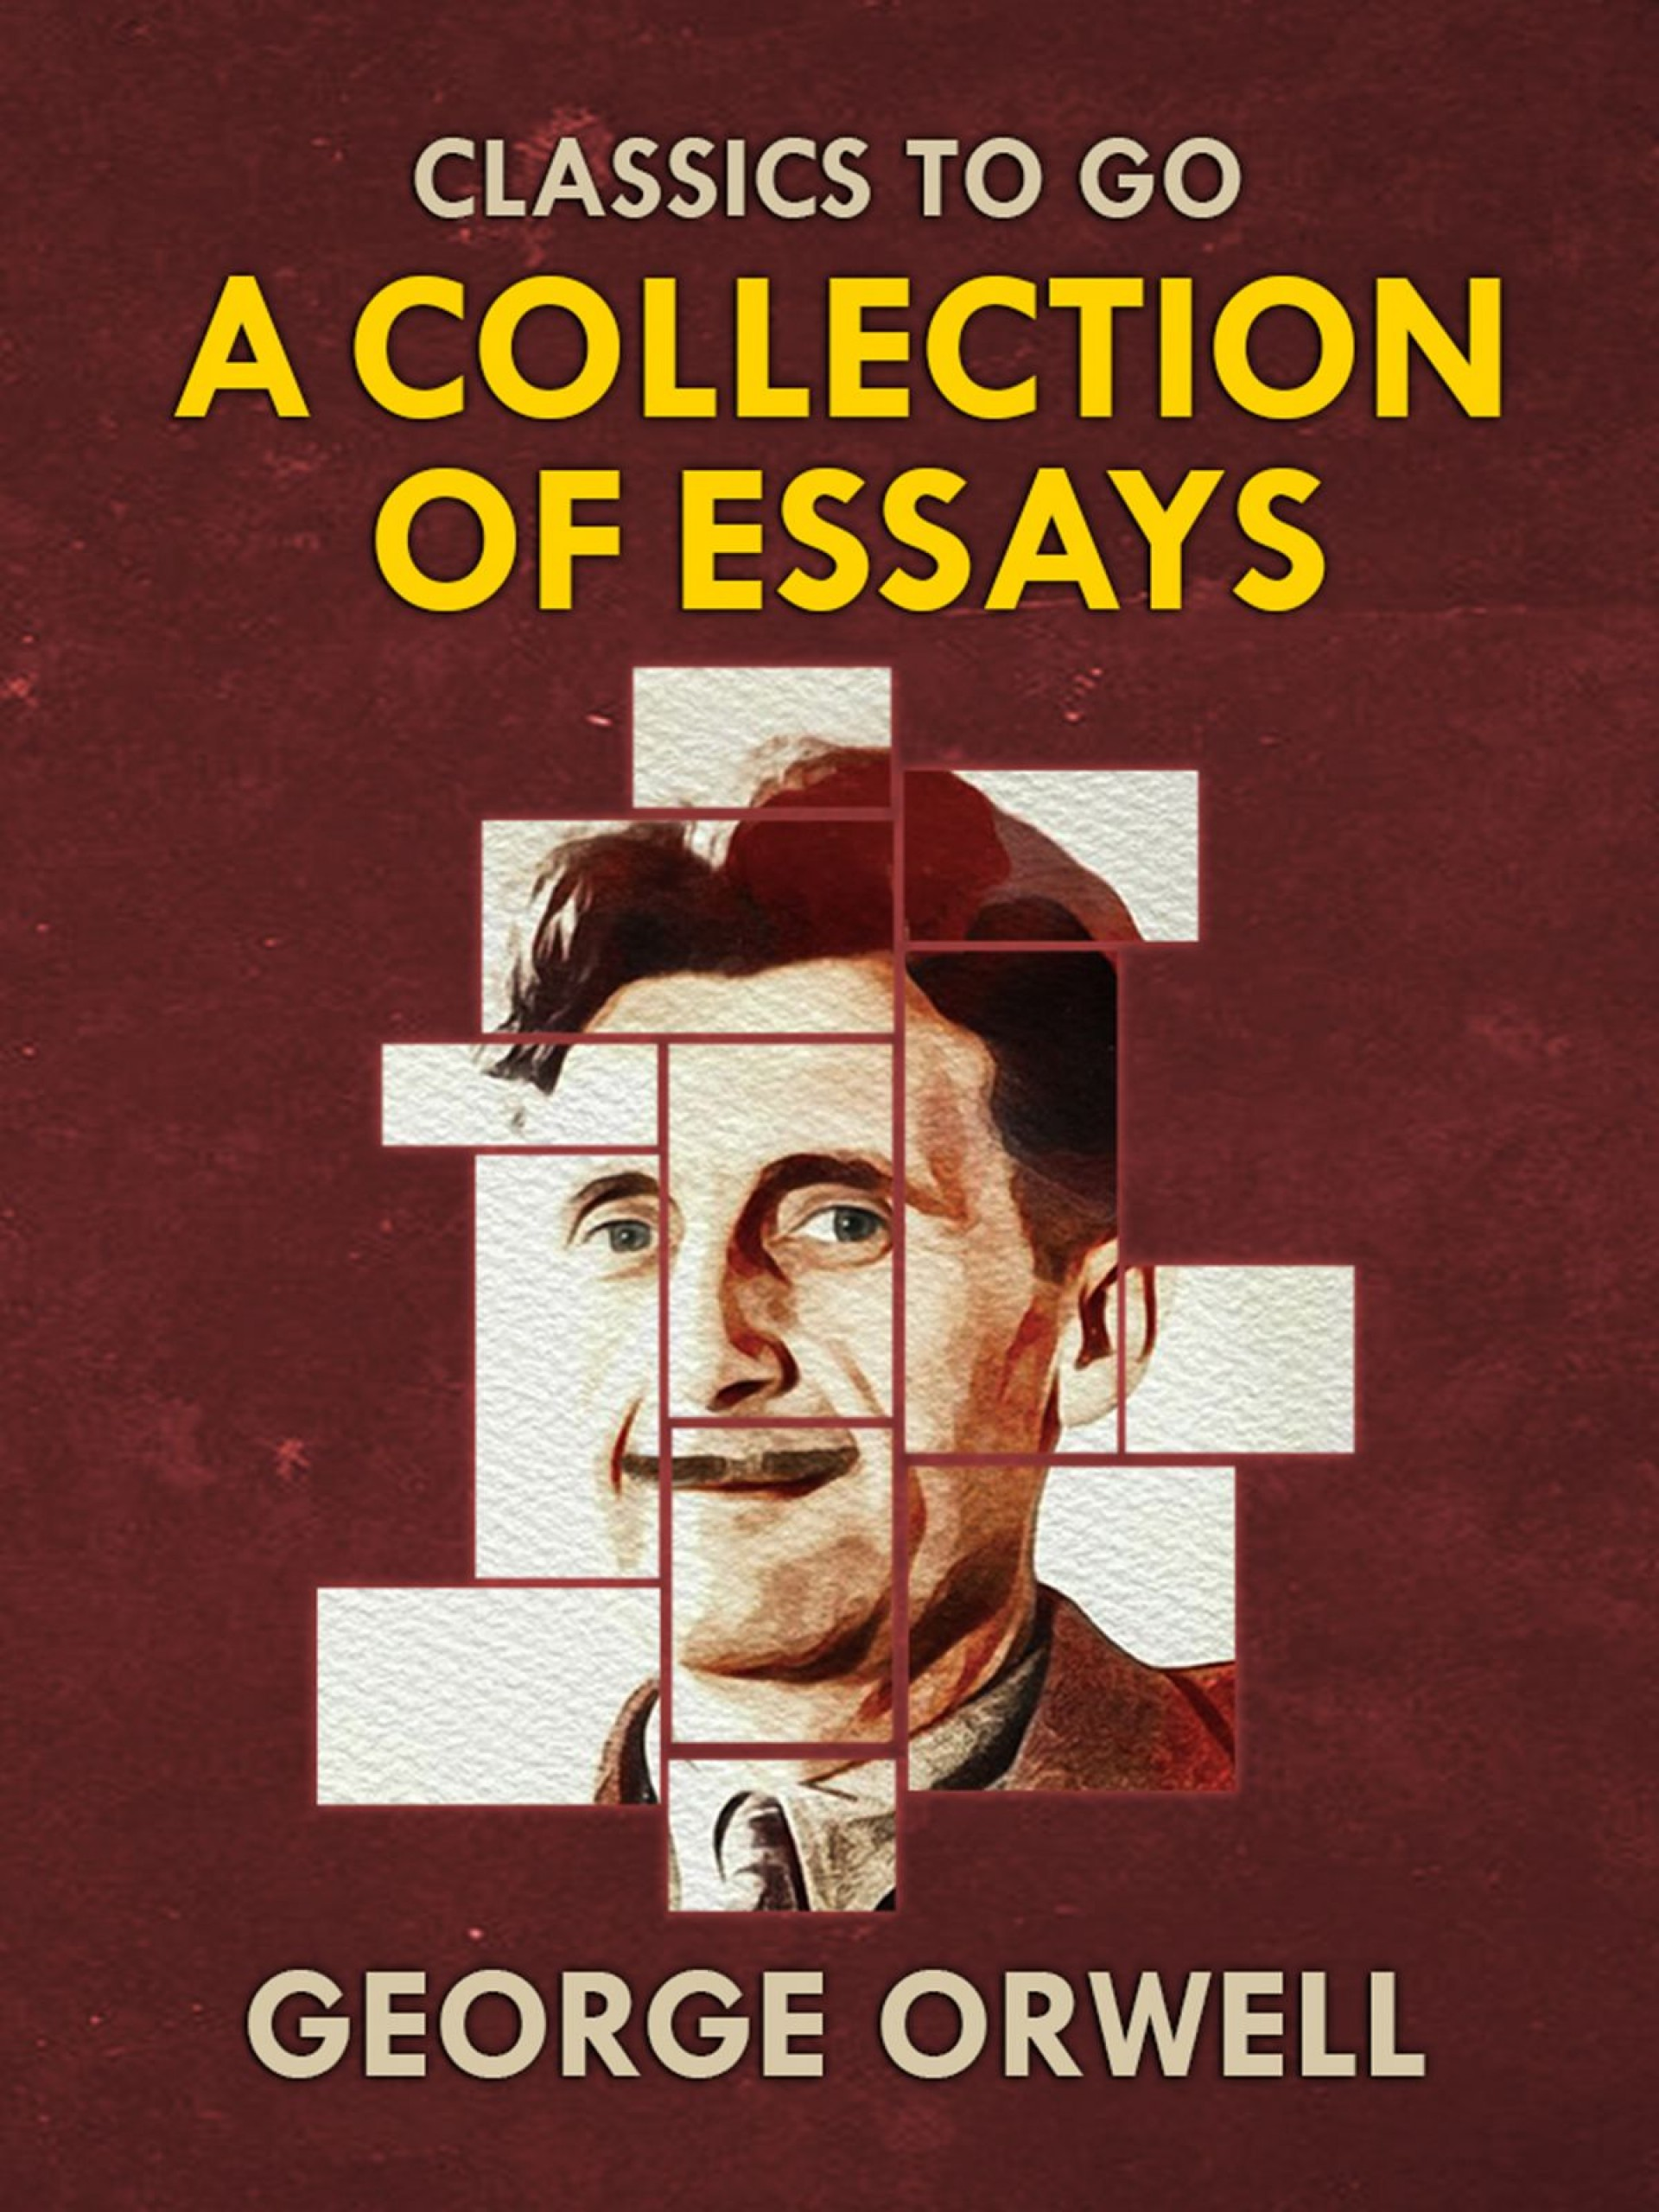 006 Essay Example Collections Of George Orwell Singular Essays Amazon Pdf Epub 1920